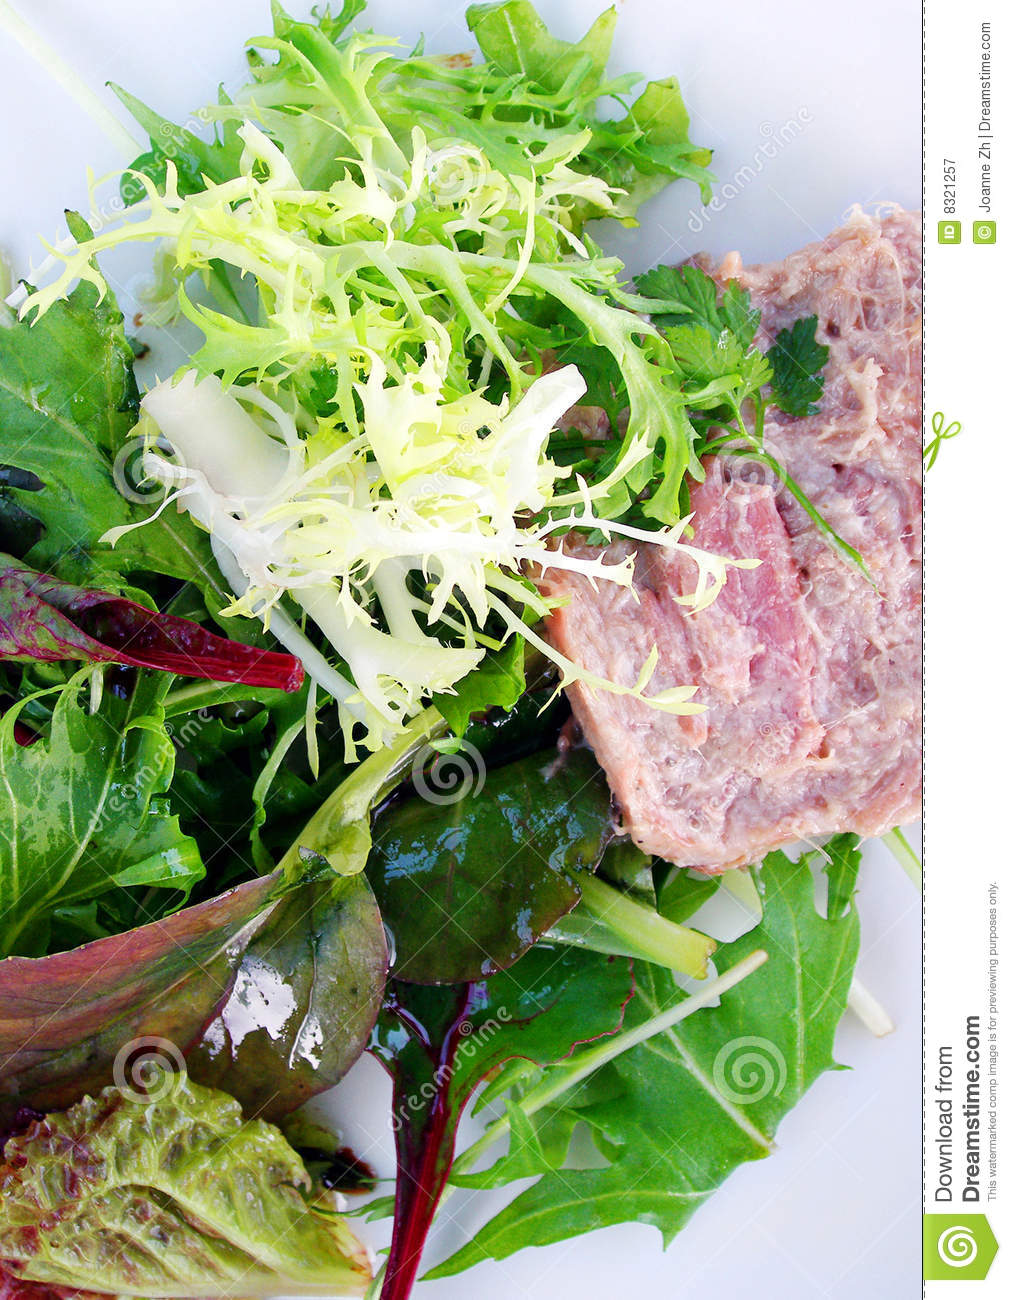 Green Leafy Lettuce Salad With Pate Royalty Free Stock Photography ...